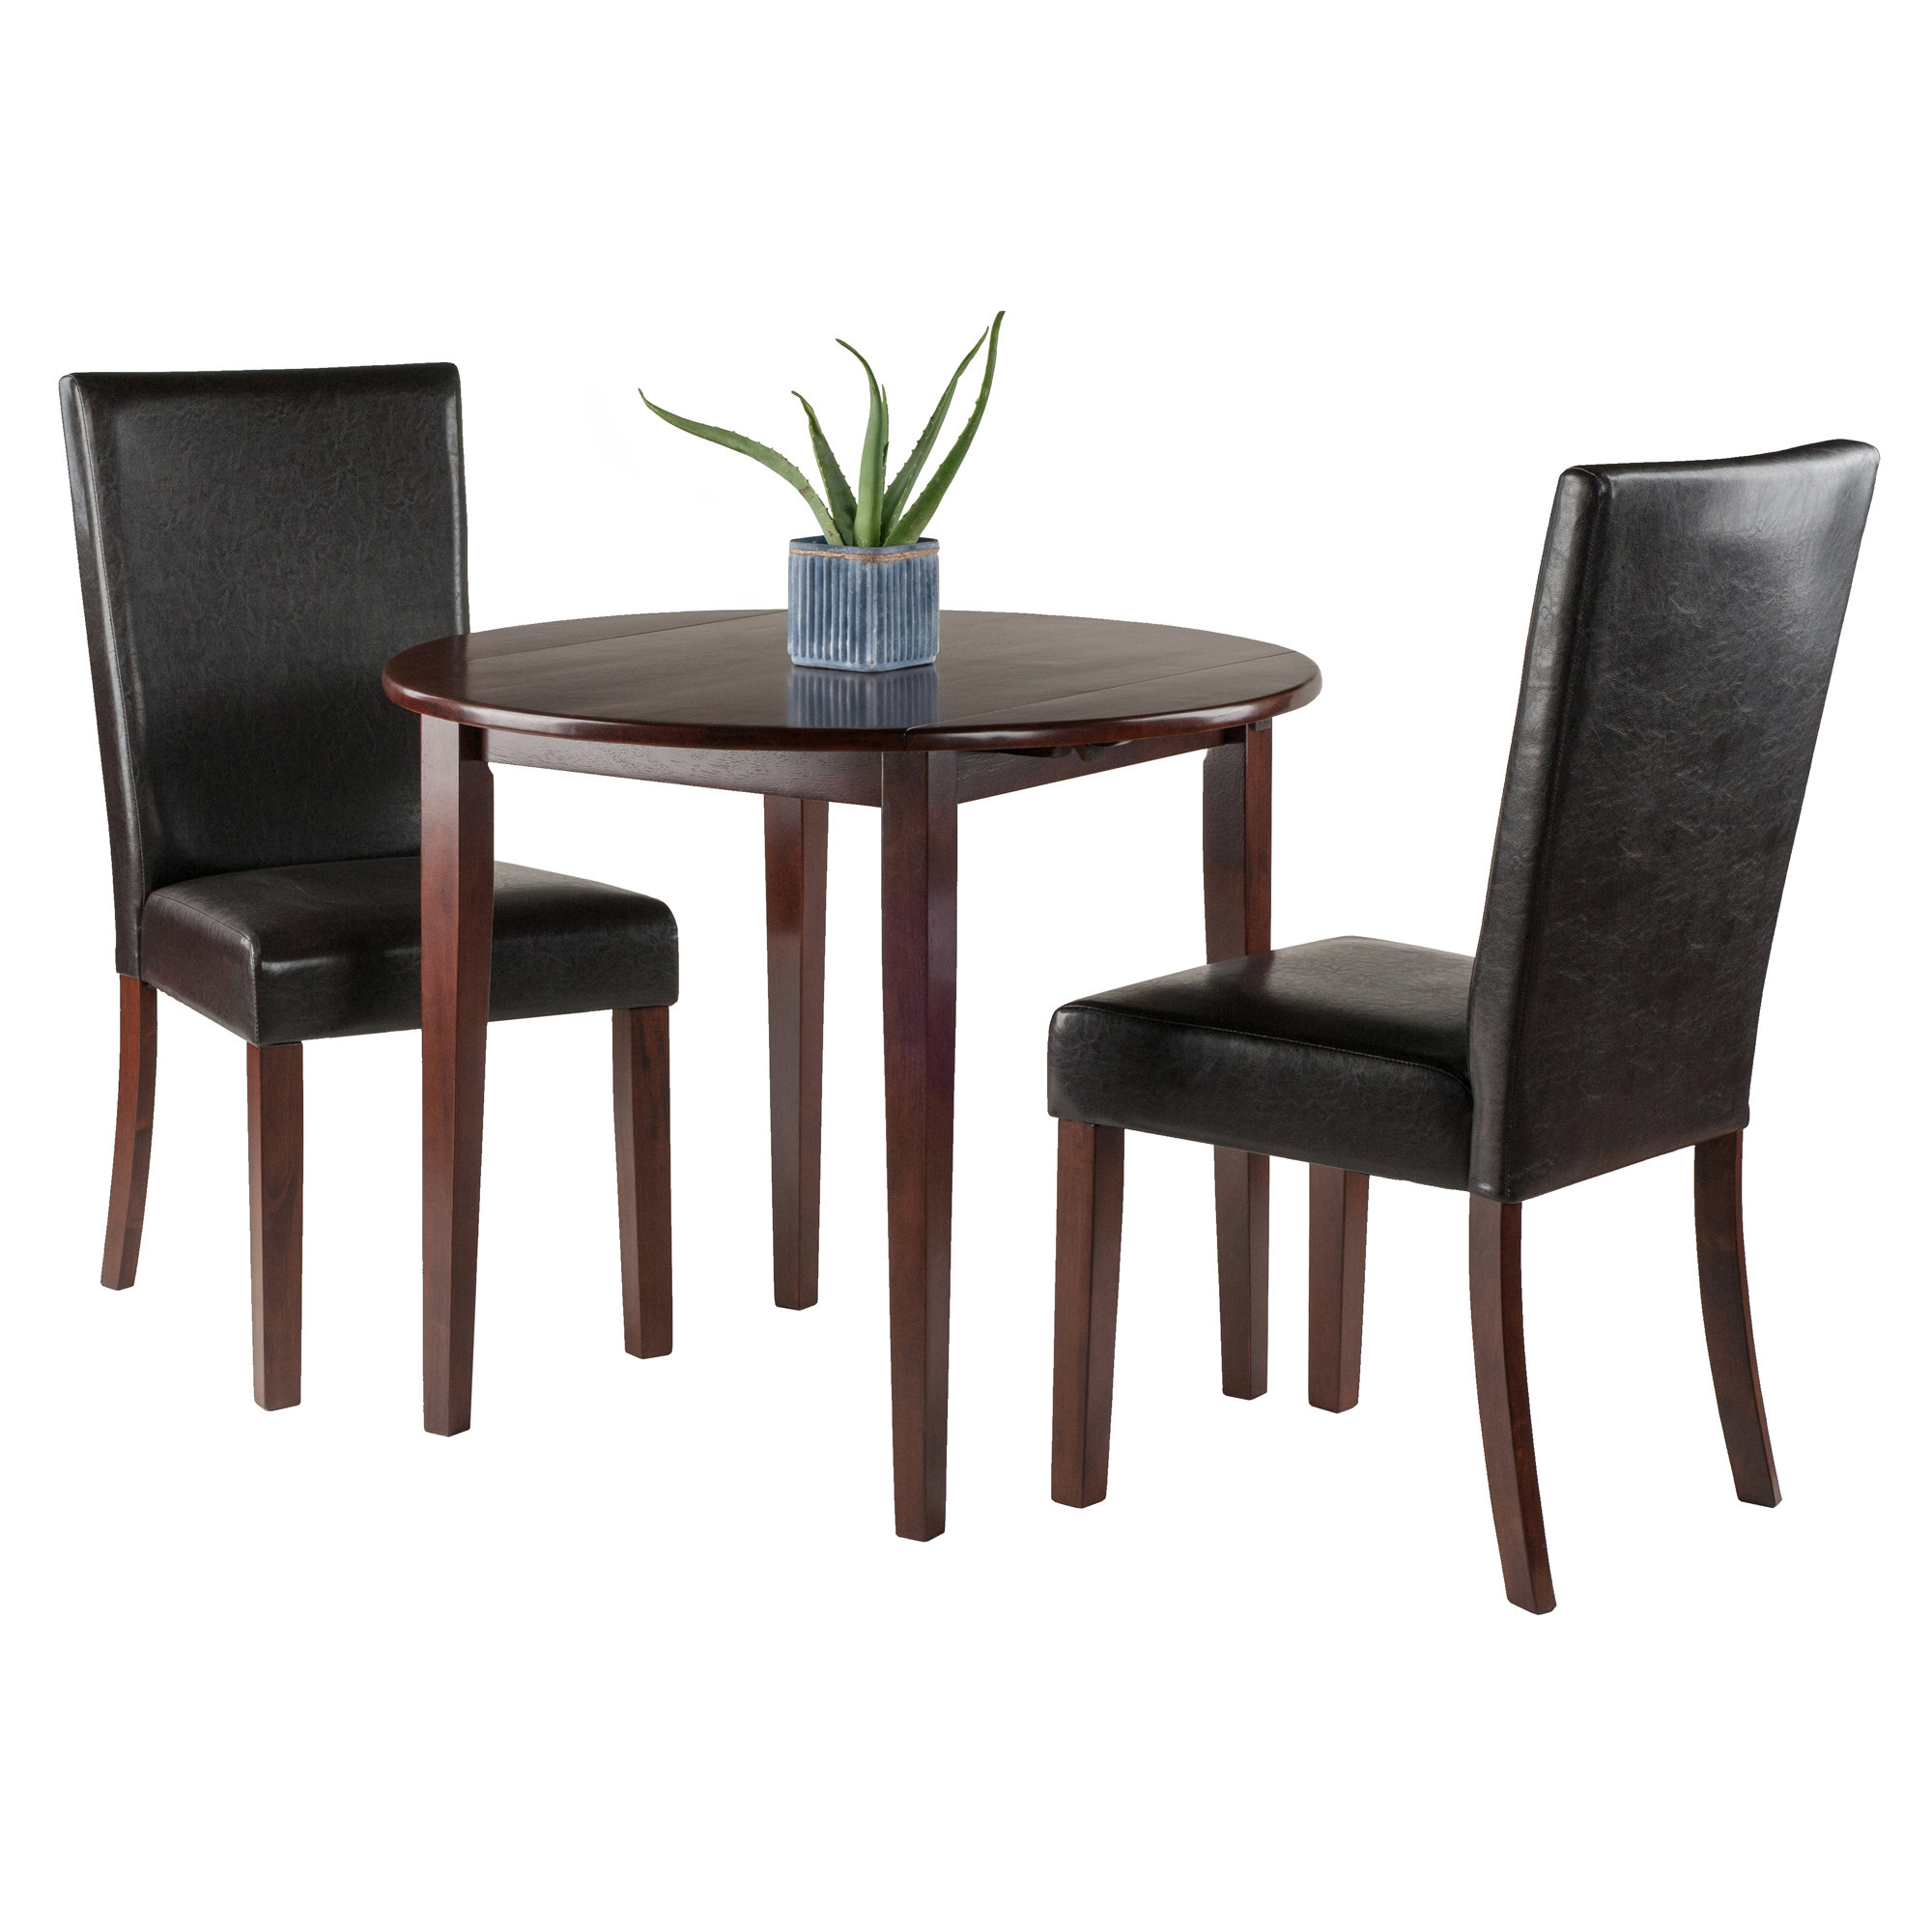 Kendall Traditional 3 Piece Drop Leaf Dining Set Intended For 2017 Baillie 3 Piece Dining Sets (View 19 of 20)